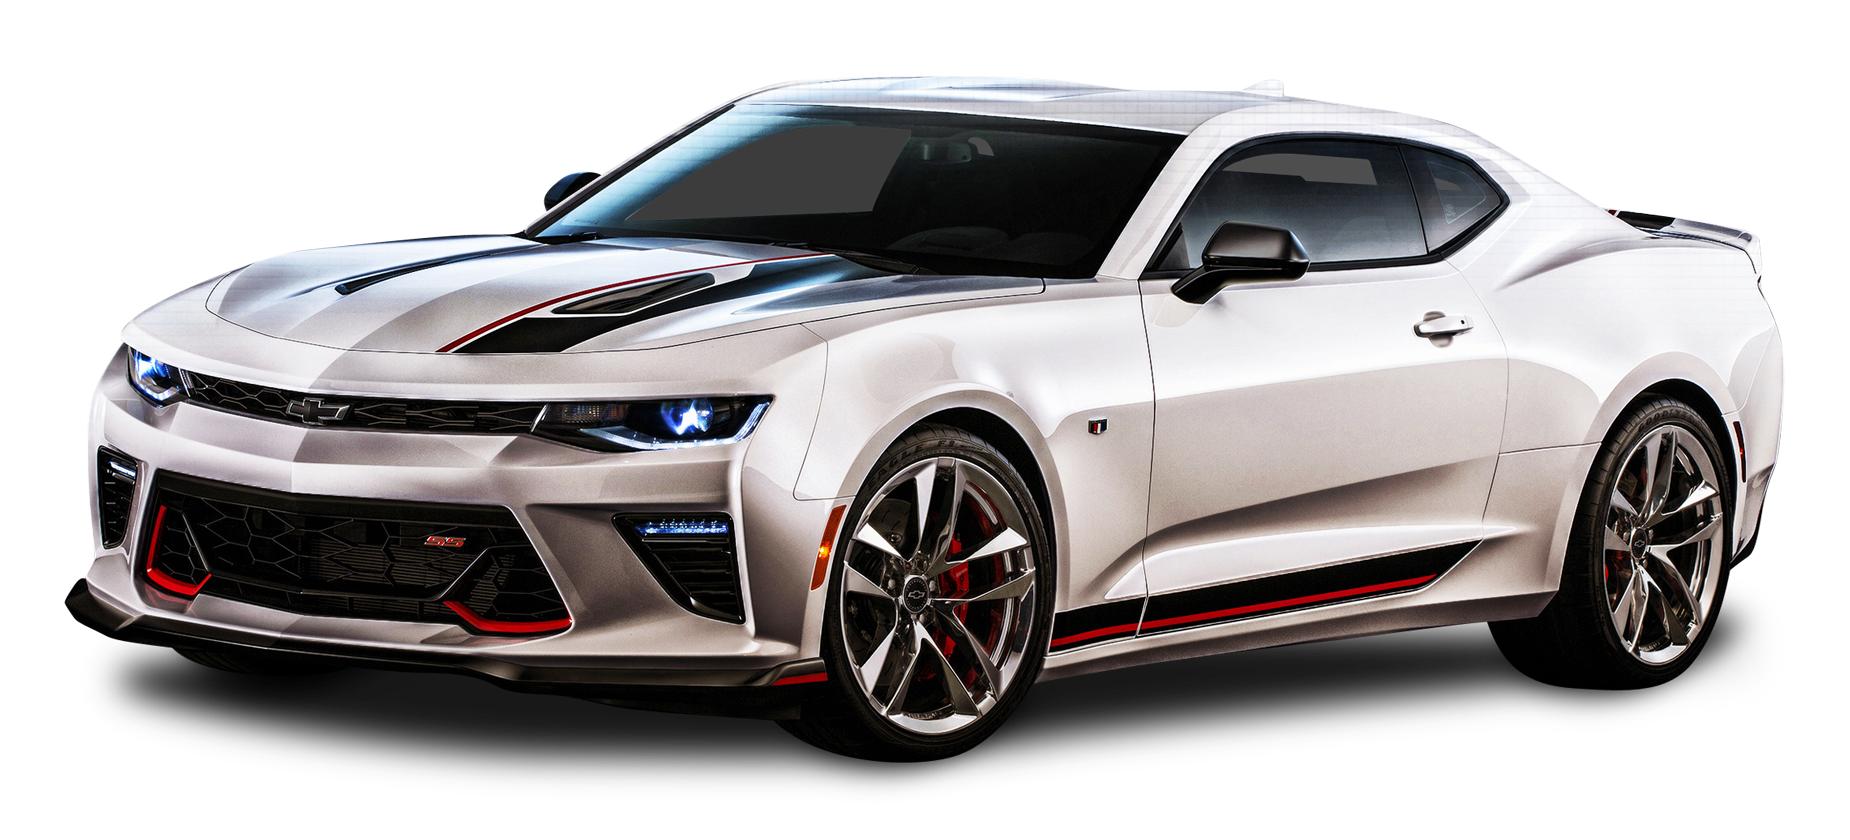 Chevrolet Camaro PNG images free download.